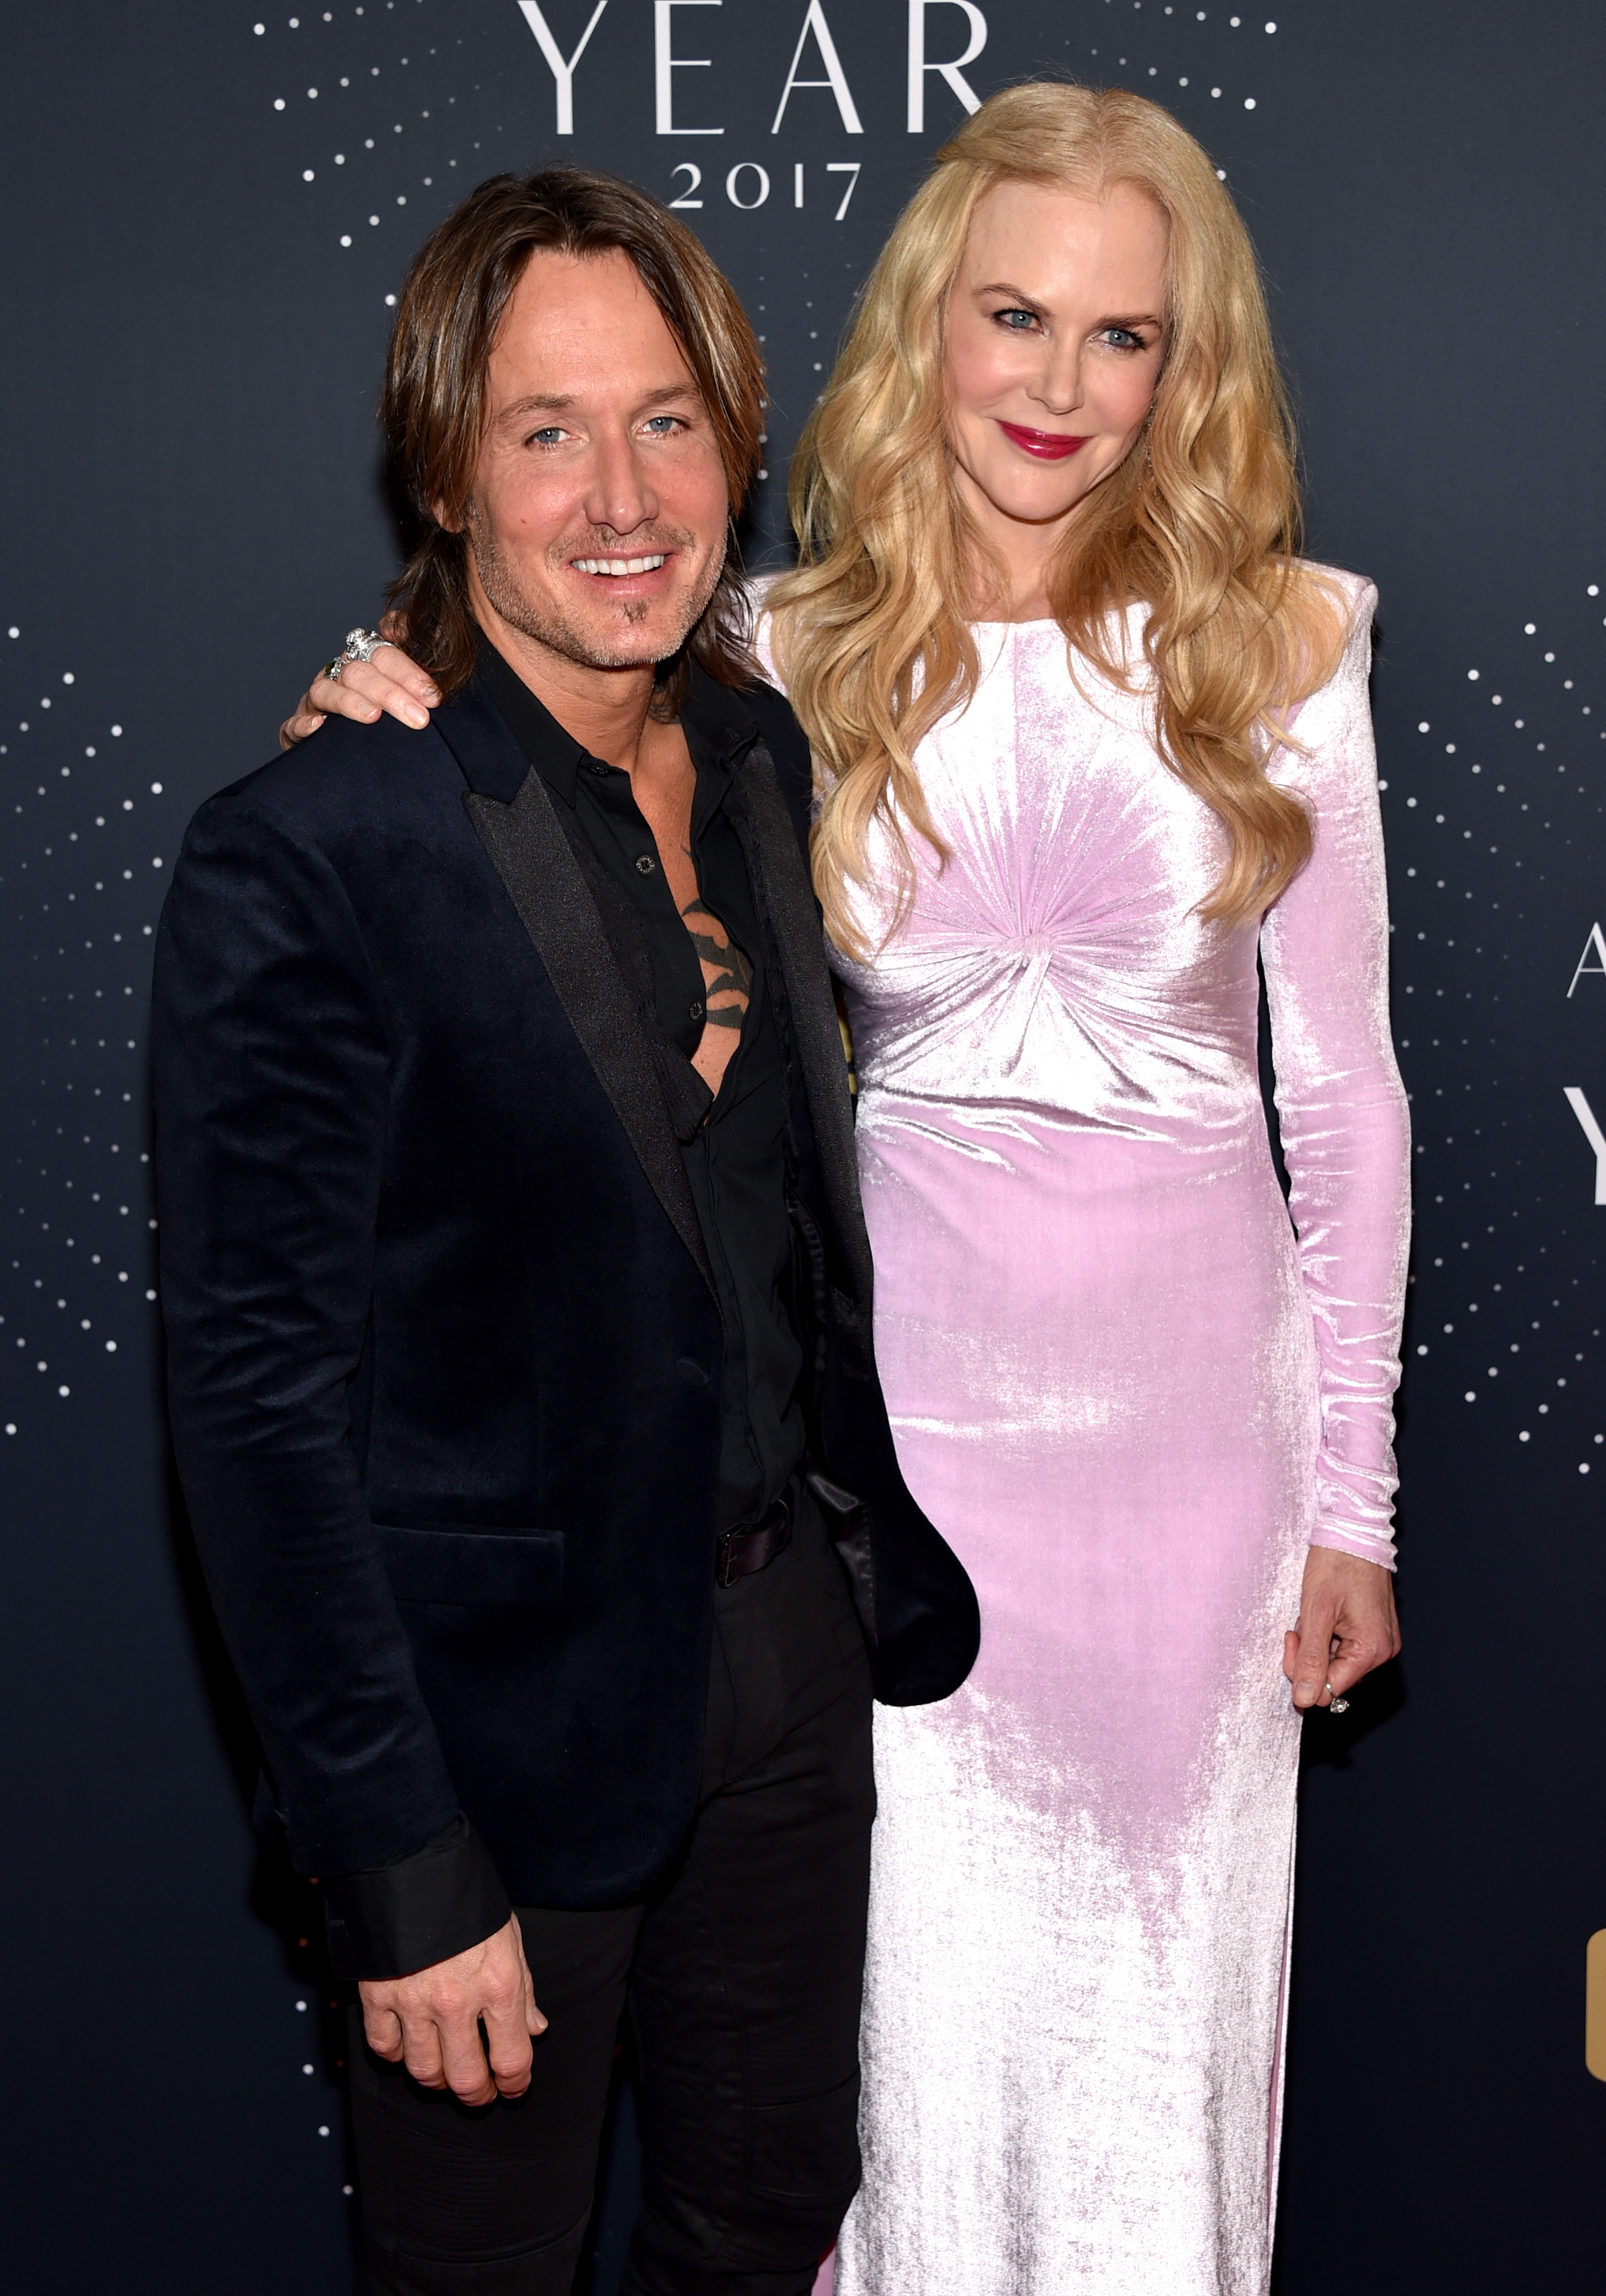 Keith Urban and Nicole Kidman; Photo by John Shearer/Getty Images for CMT